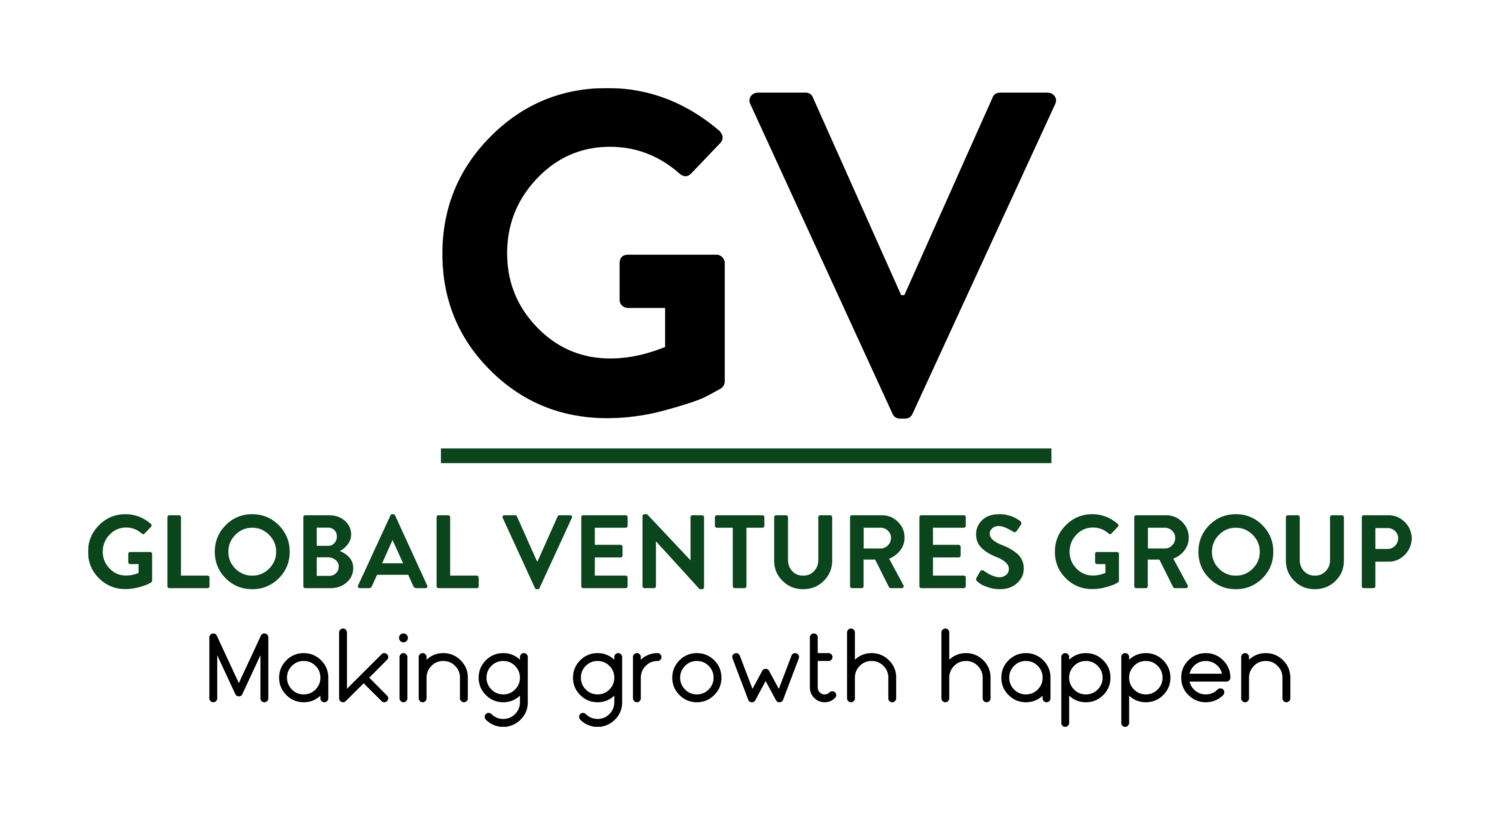 Global Ventures Group